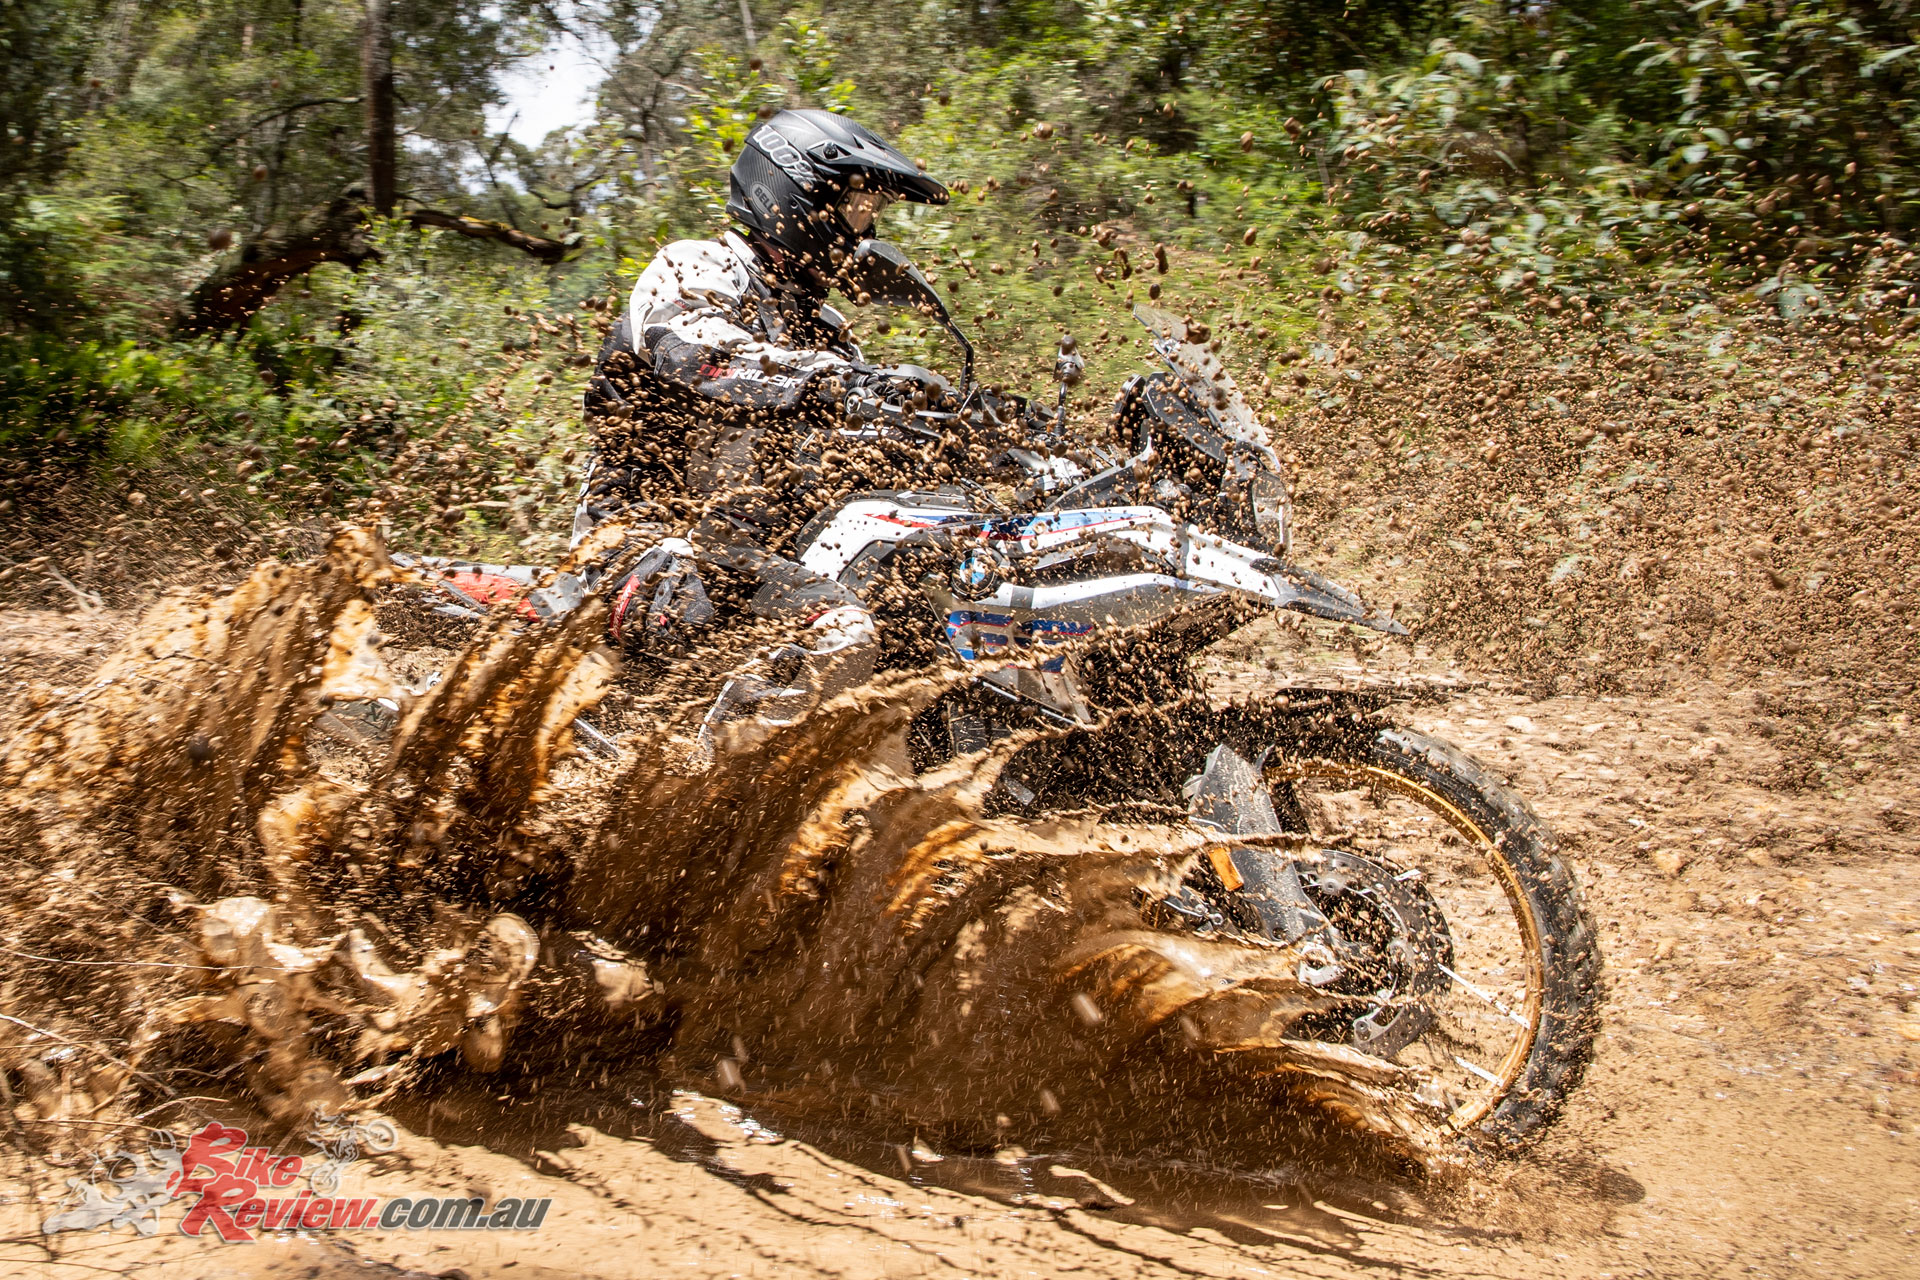 The 2019 F 850 GS is a hardcore adventure bike that will get you more places than the bigger GS range.